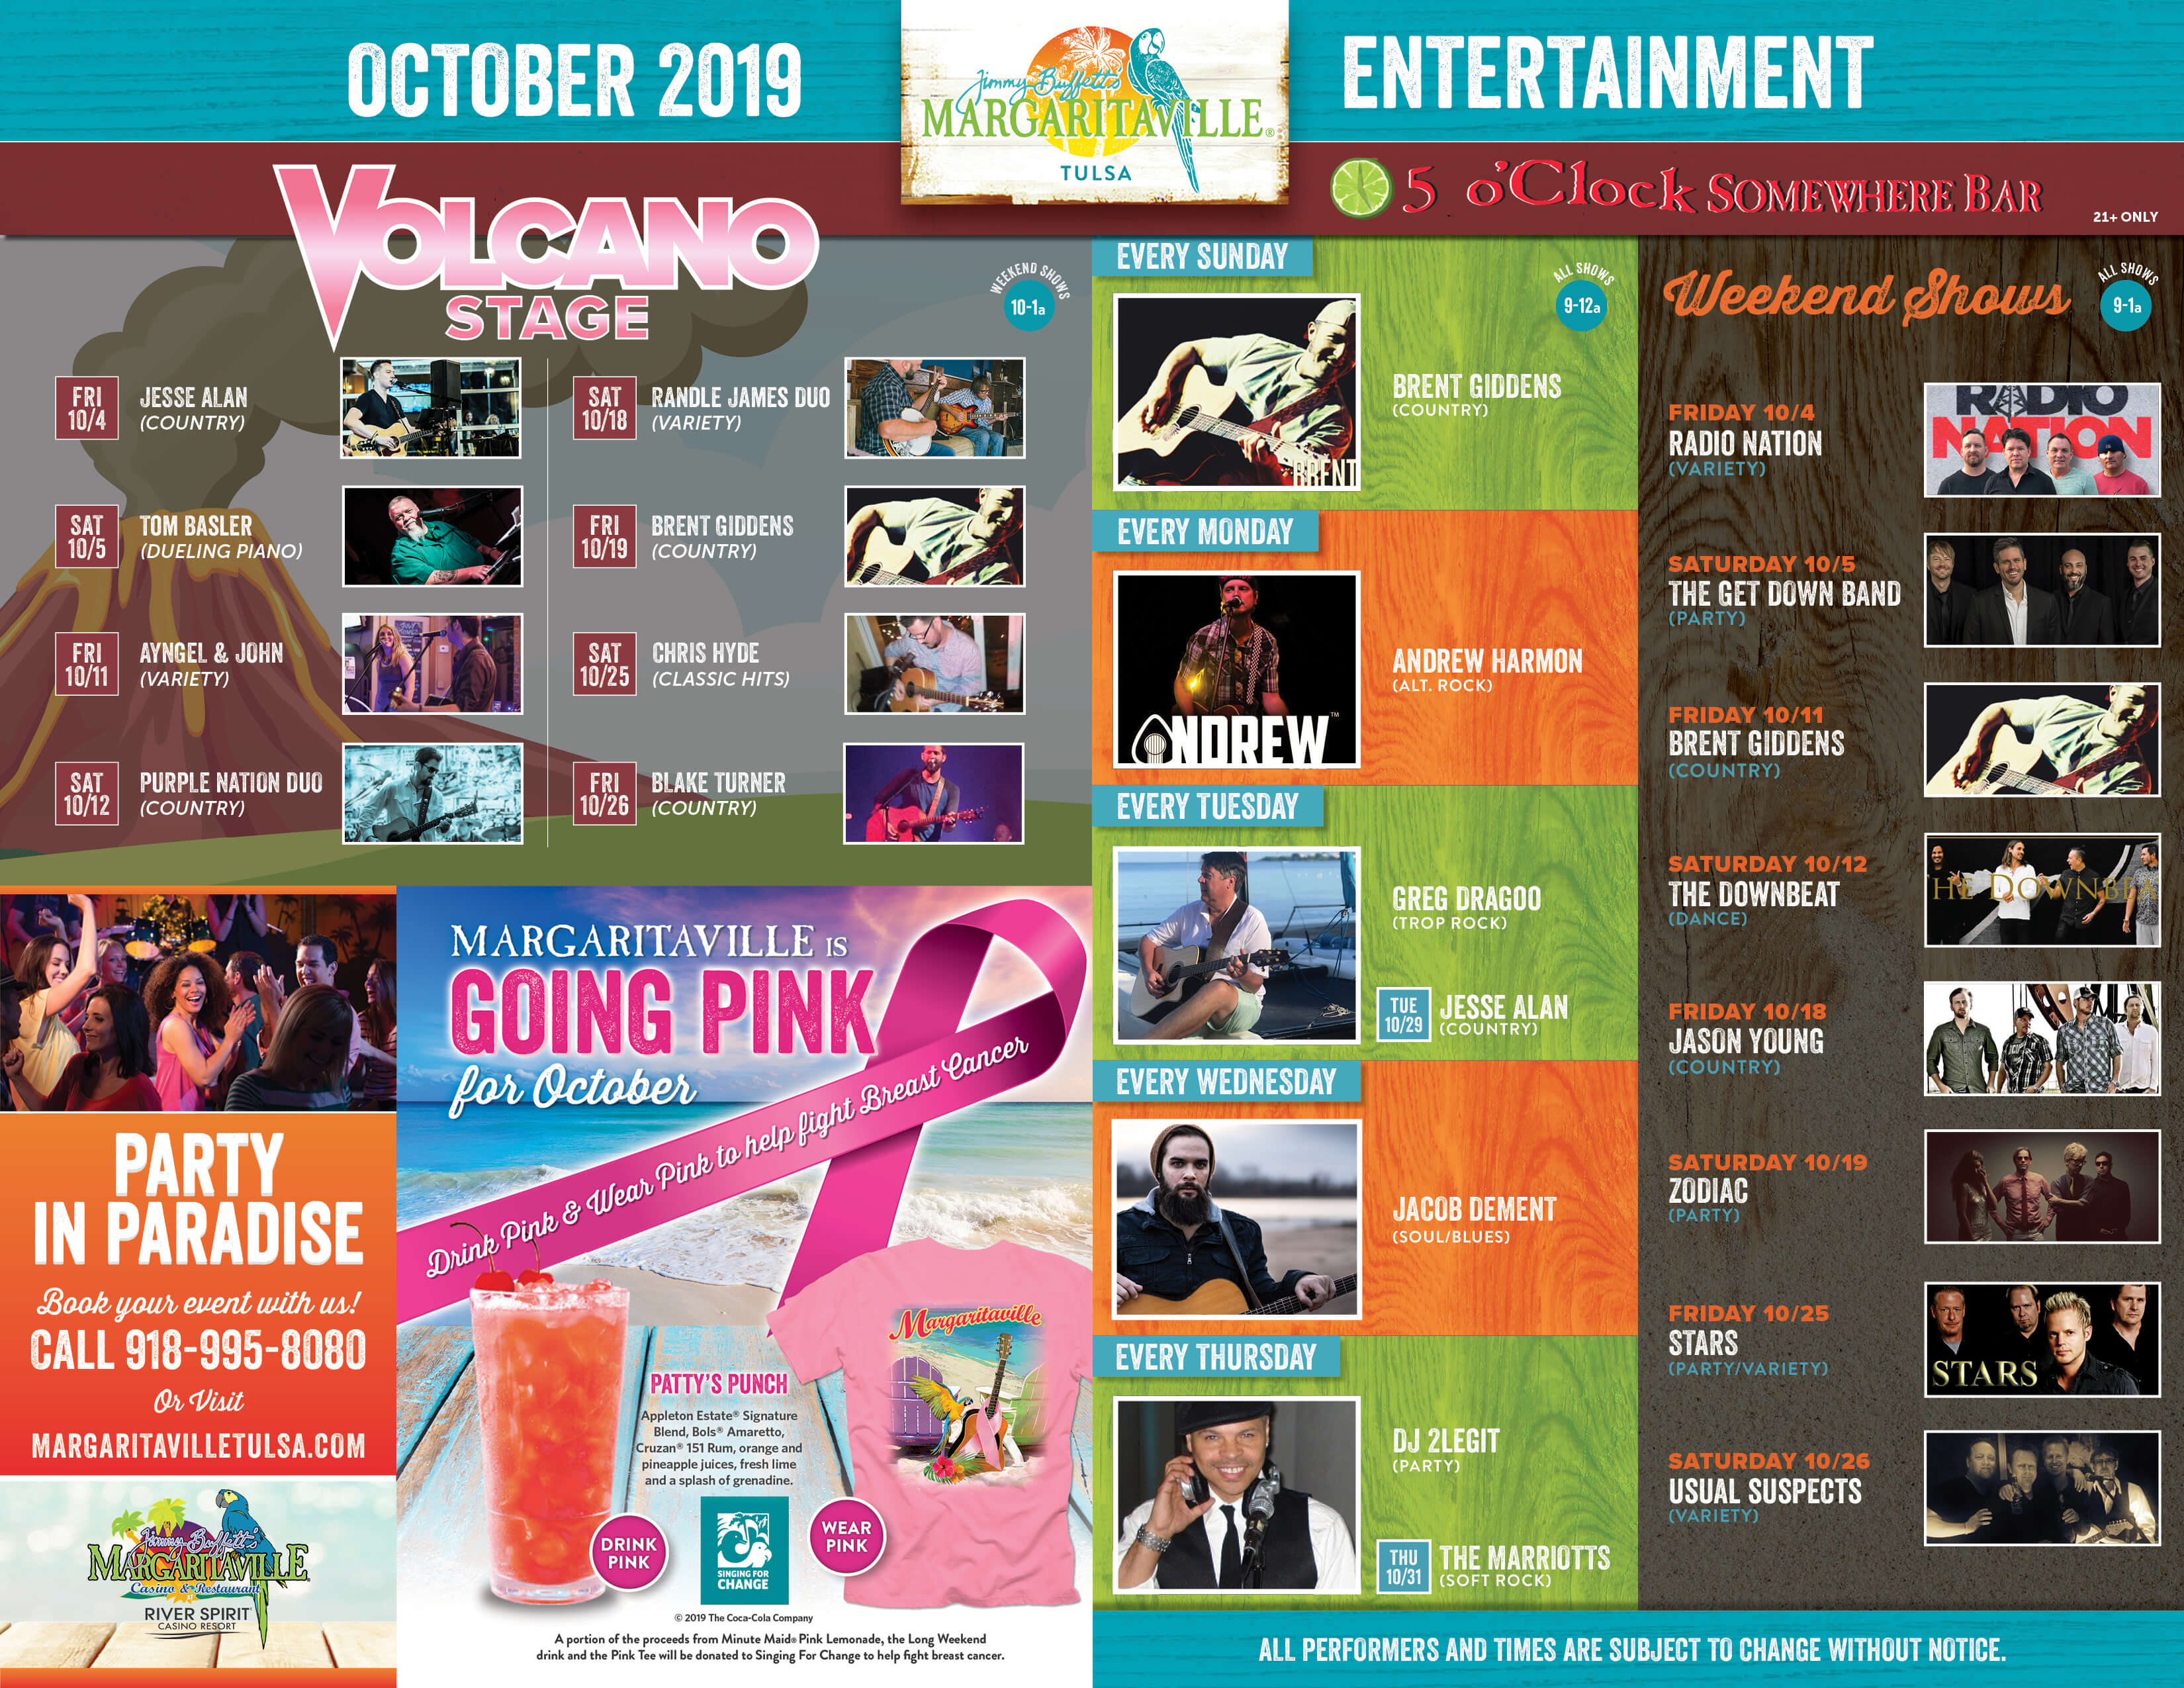 Margaritaville Tulsa October Calendar of Events. Visually impaired customers please call for assistance or read next tab